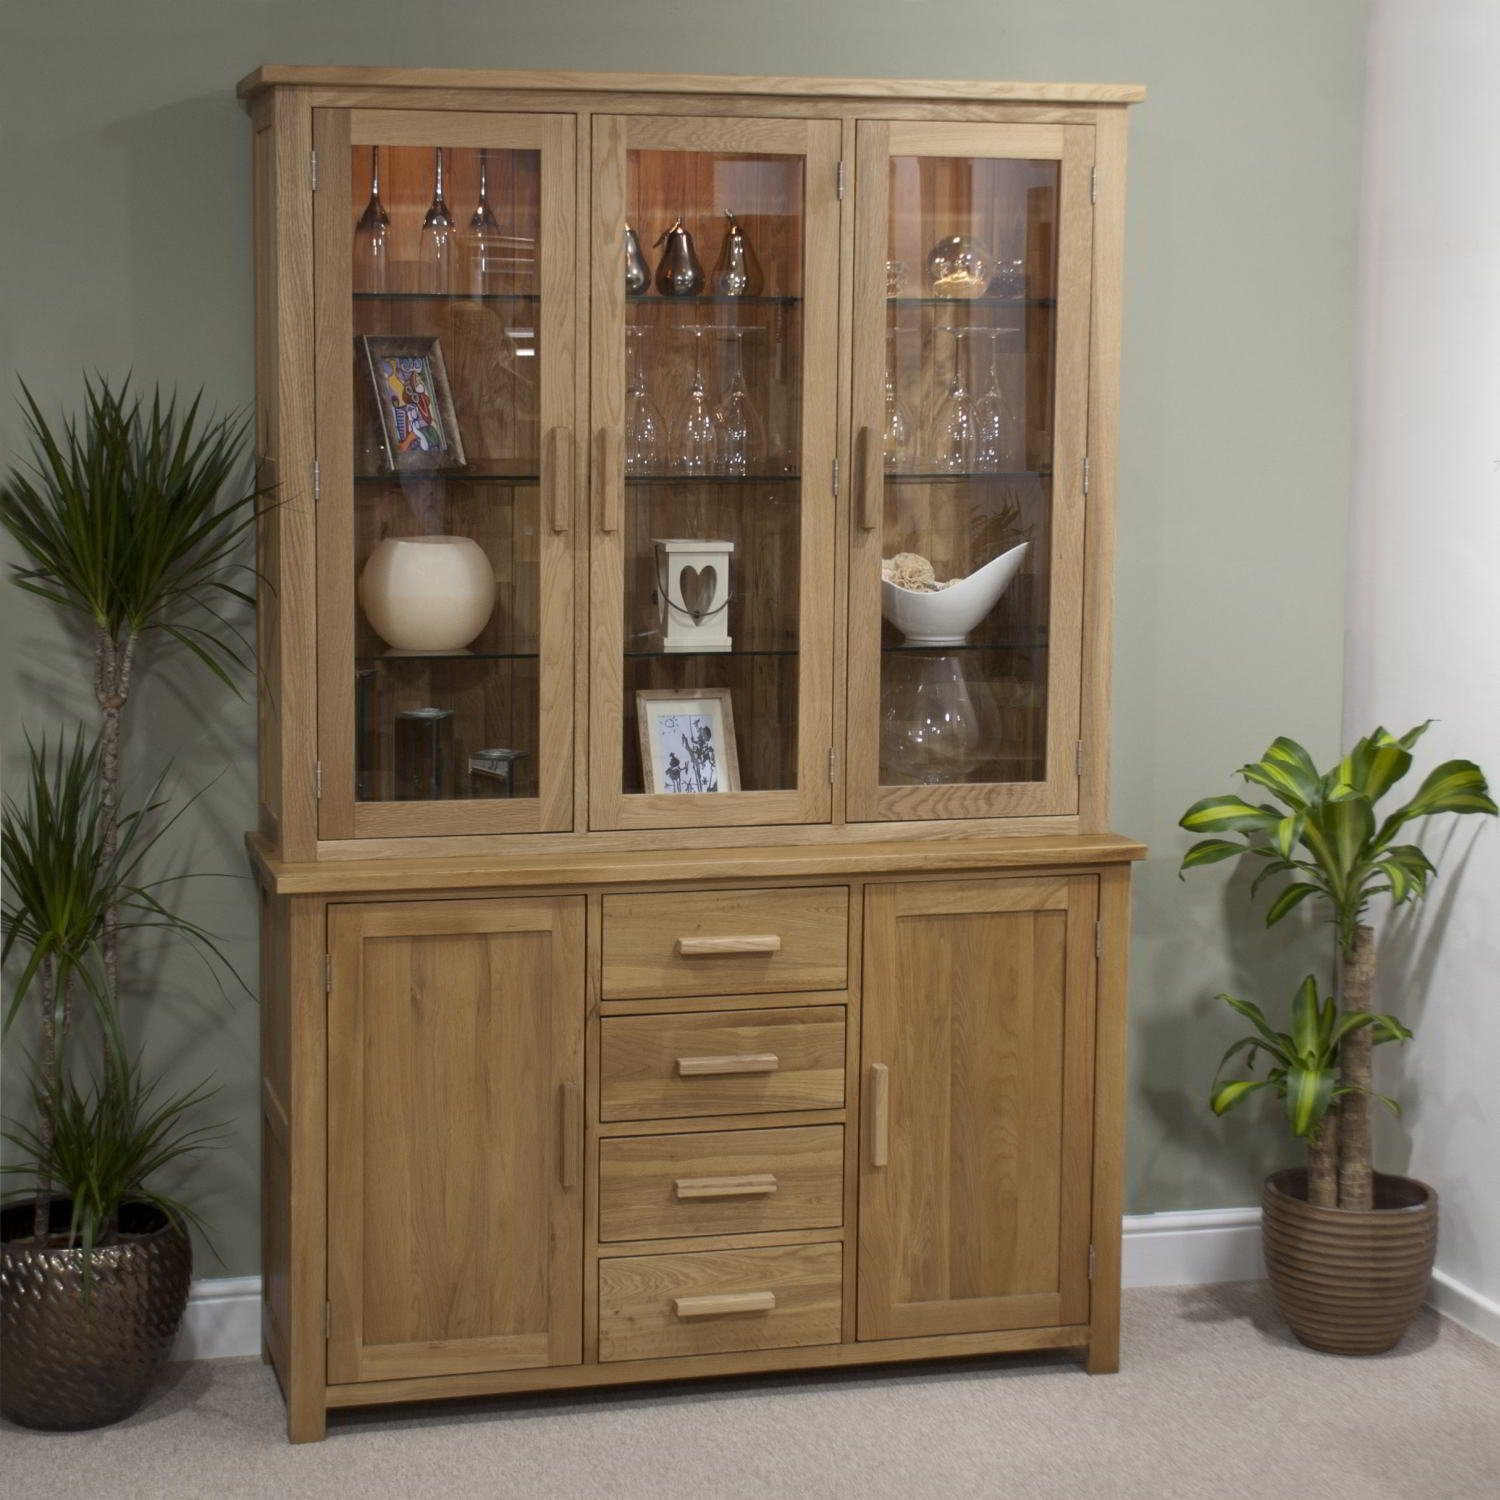 Eton Solid Oak Furniture Large Glazed Dresser Display Cabinet With Light Amazoncouk Kitchen Home